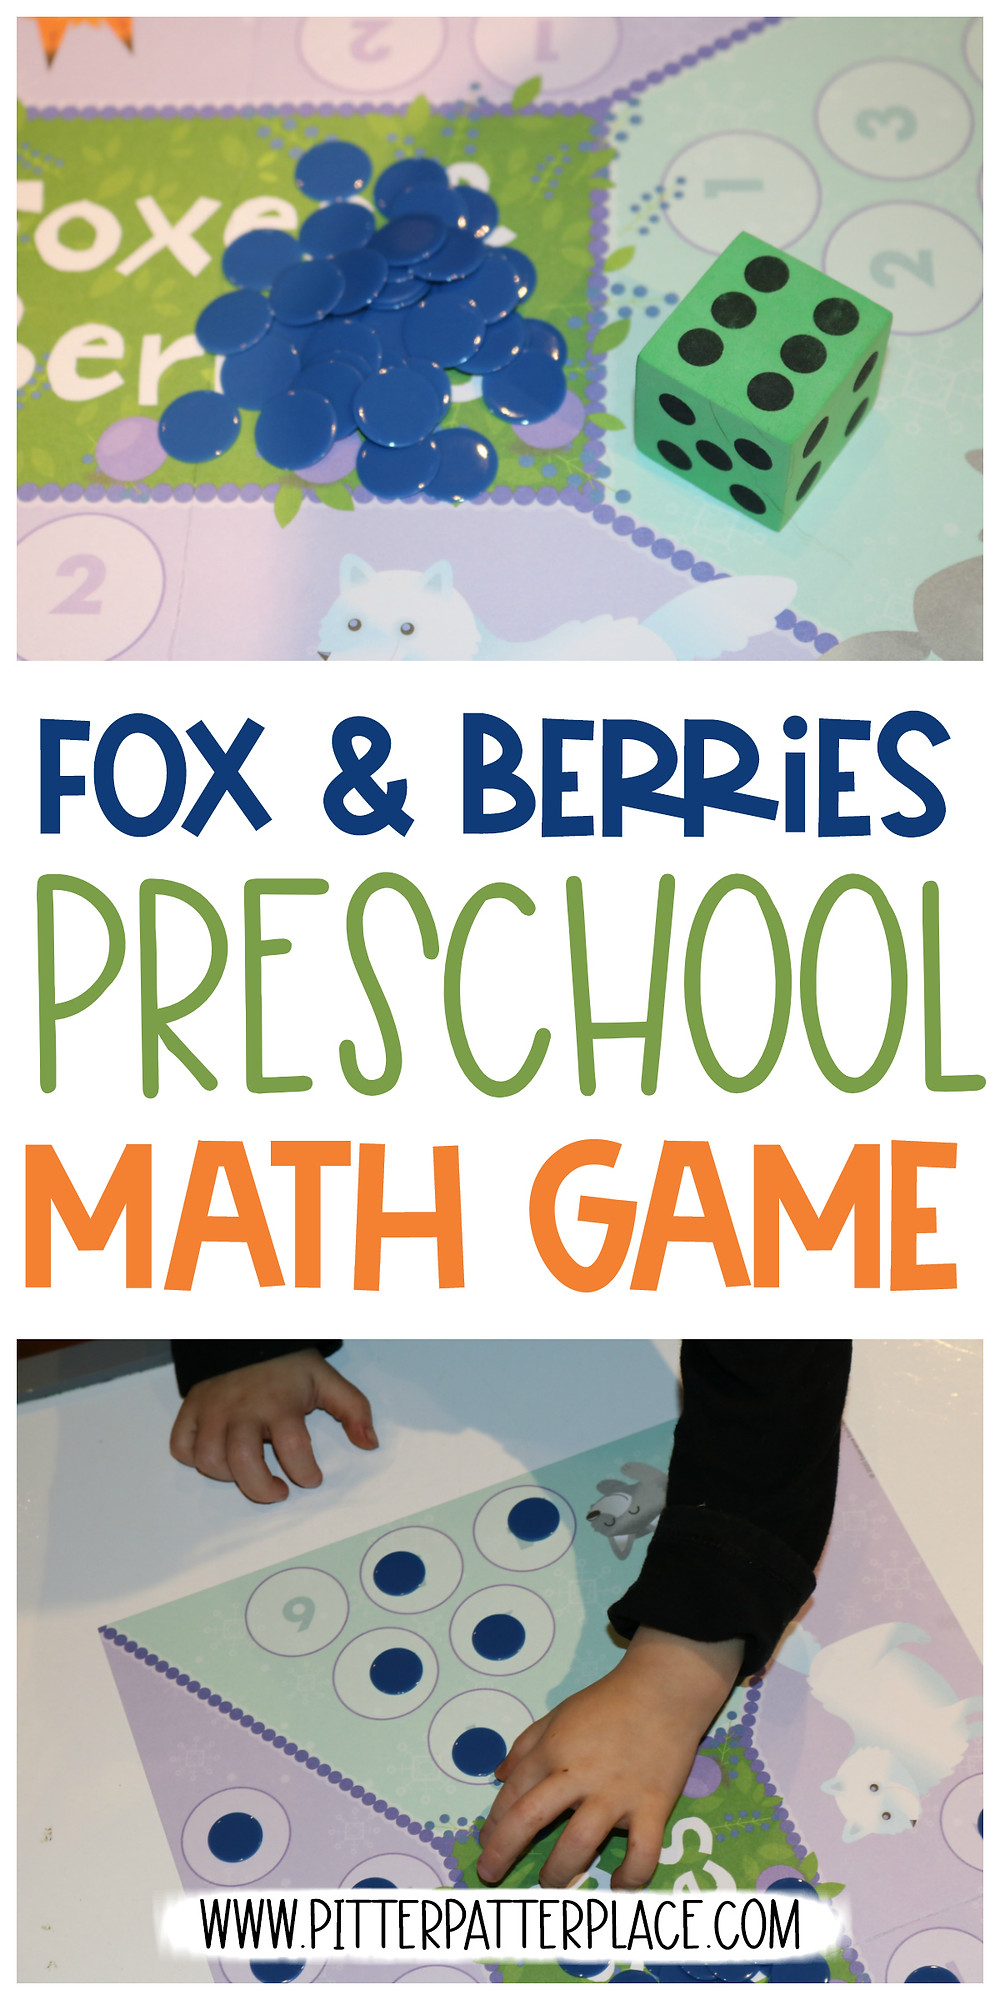 collage of preschool math game images with text: Fox & Berries Preschool Math Game